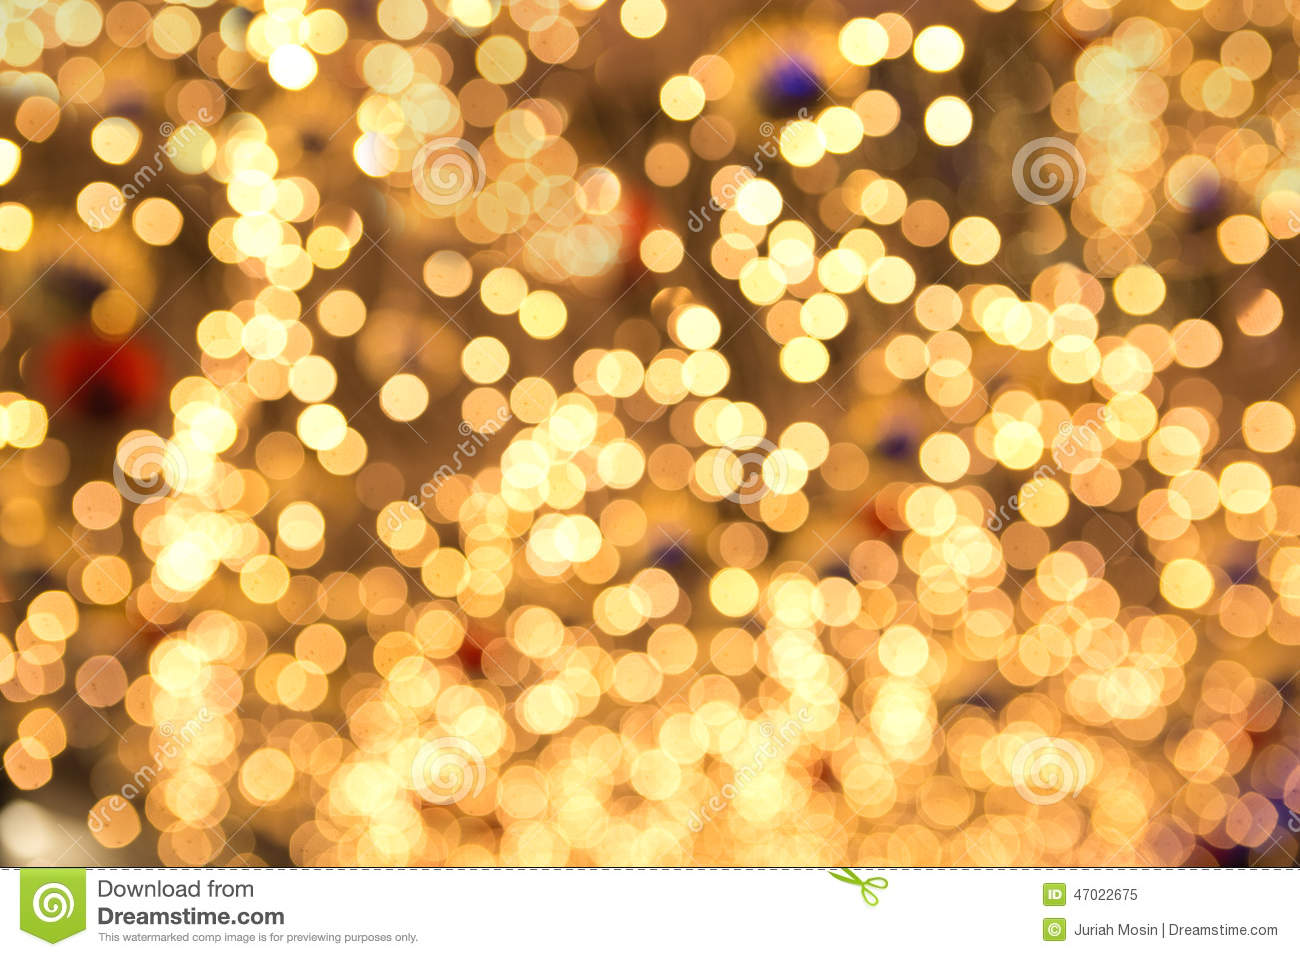 royalty free stock photo download beautiful yellow christmas fairy lights - Christmas Fairy Lights